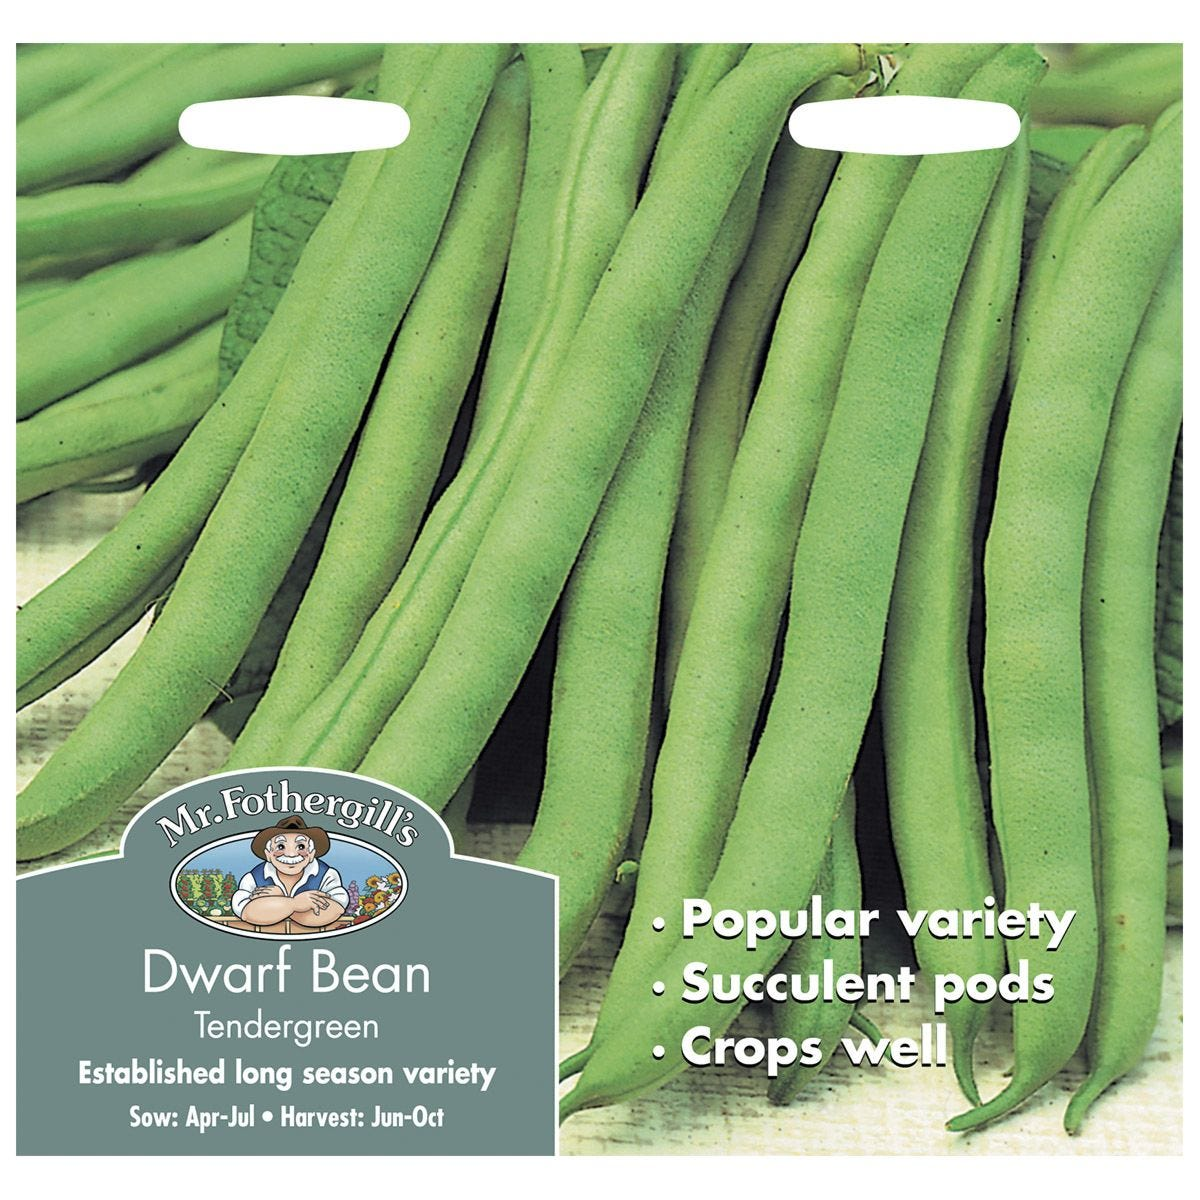 Mr Fothergill's Dwarf Bean Tendergreen Seeds